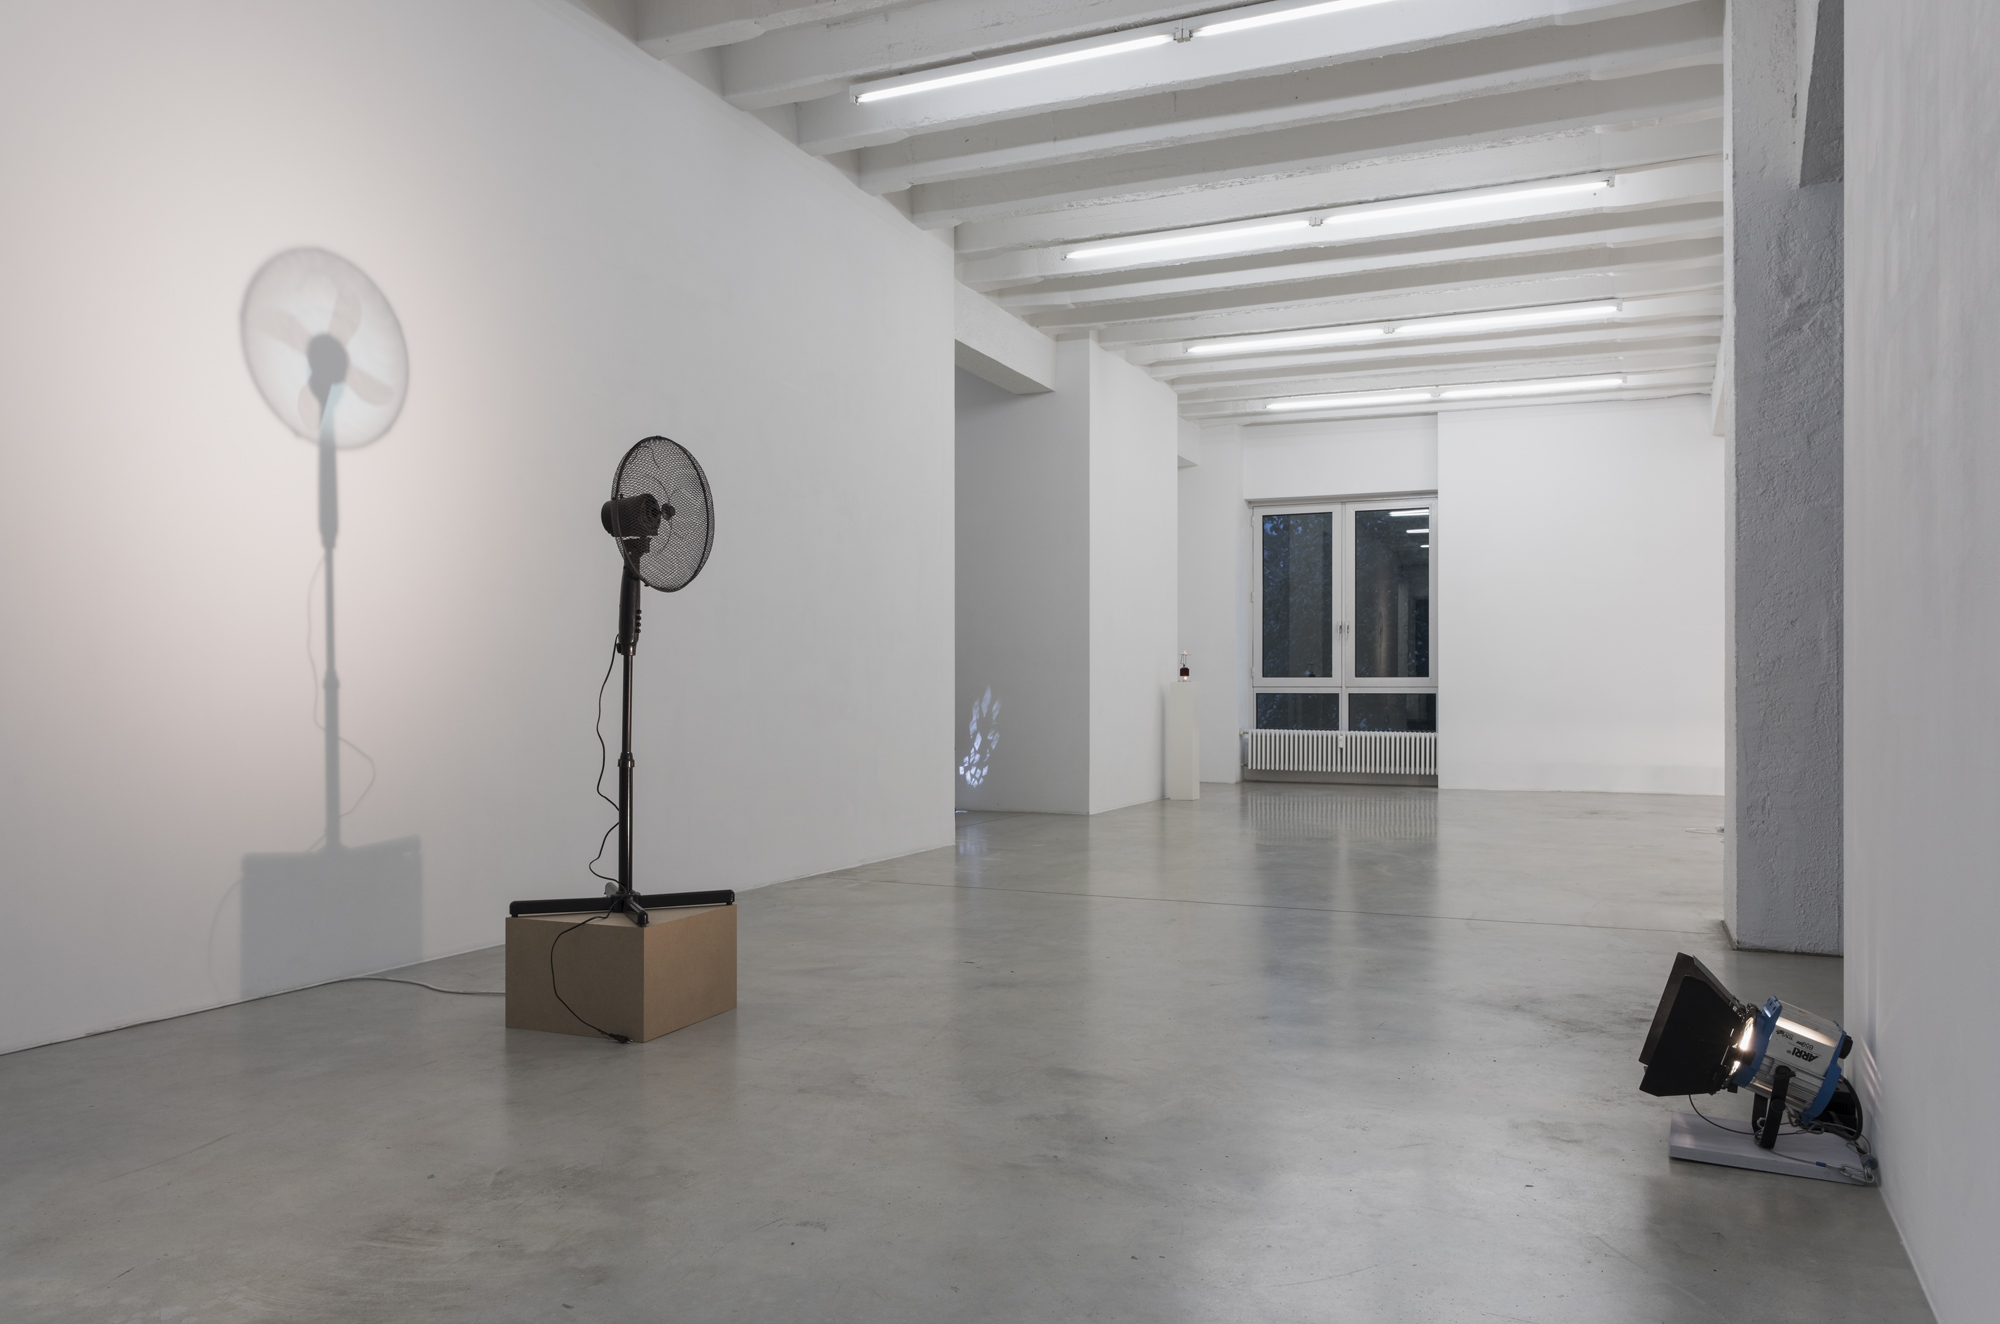 Vadim Fishkin, Light Solidarity, exhibition view, Galerija Gregor Podnar, Berlin, 2017. Photo: Marcus Schneider